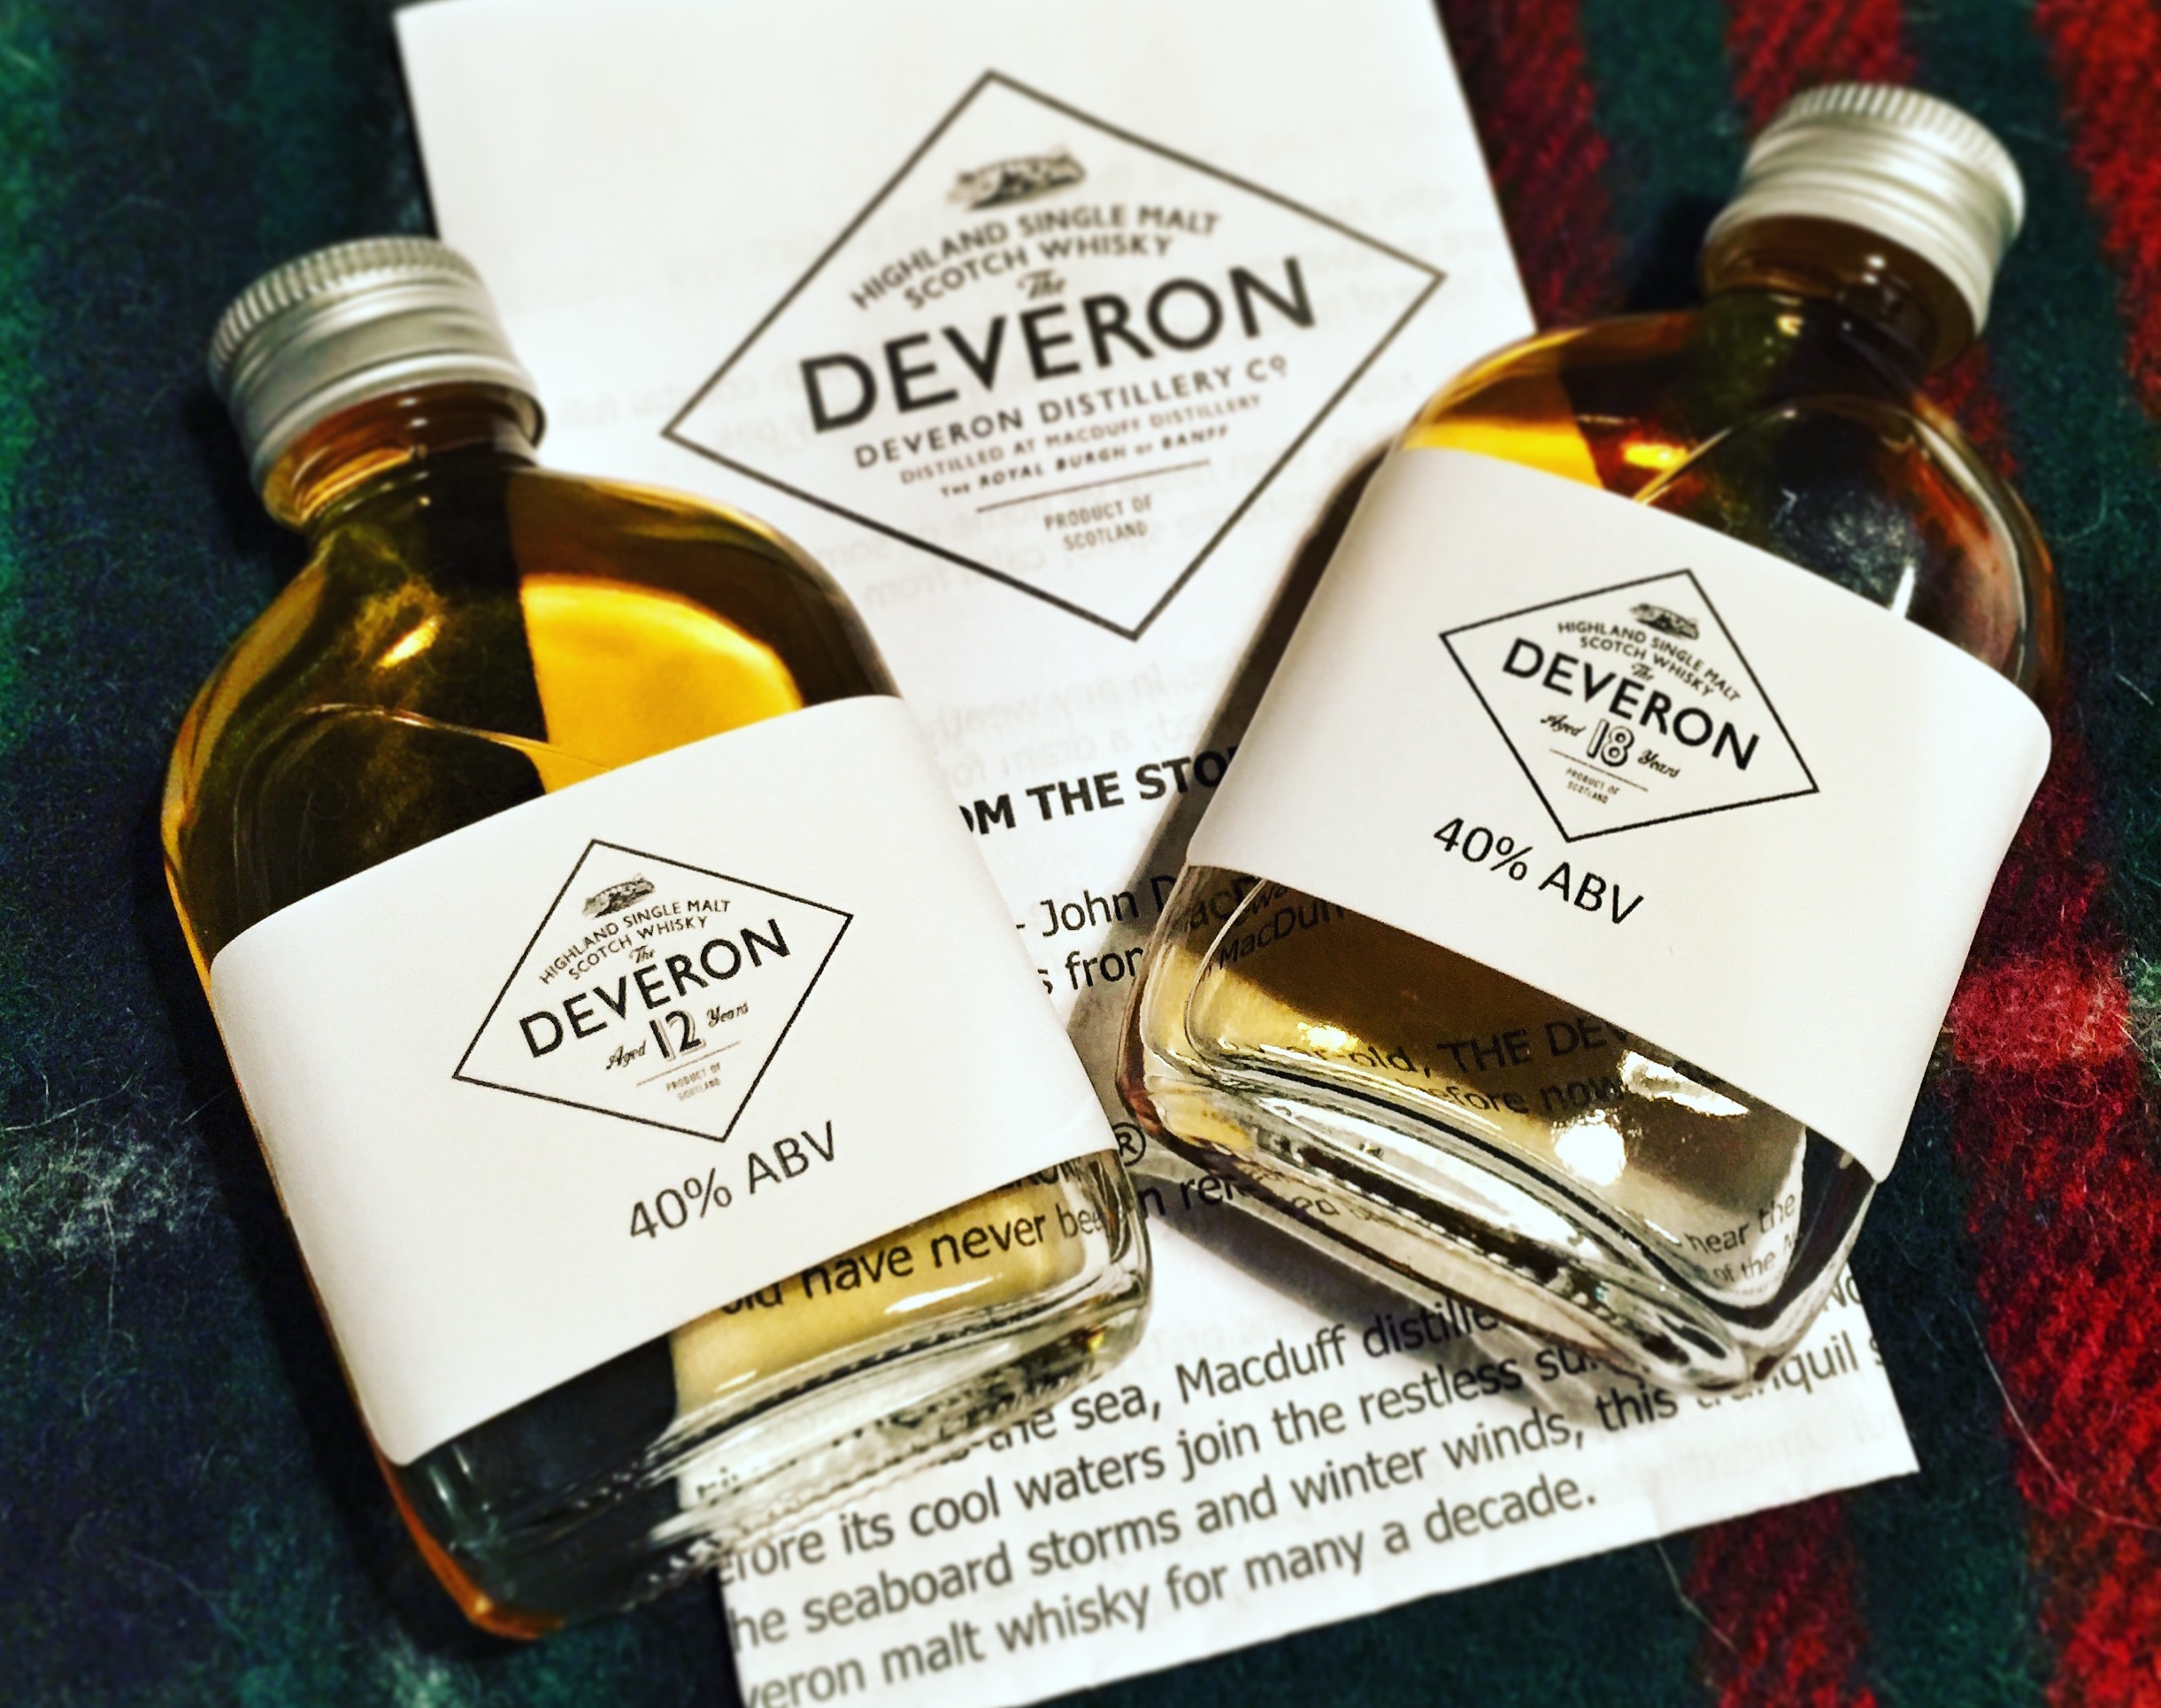 Whisky samples